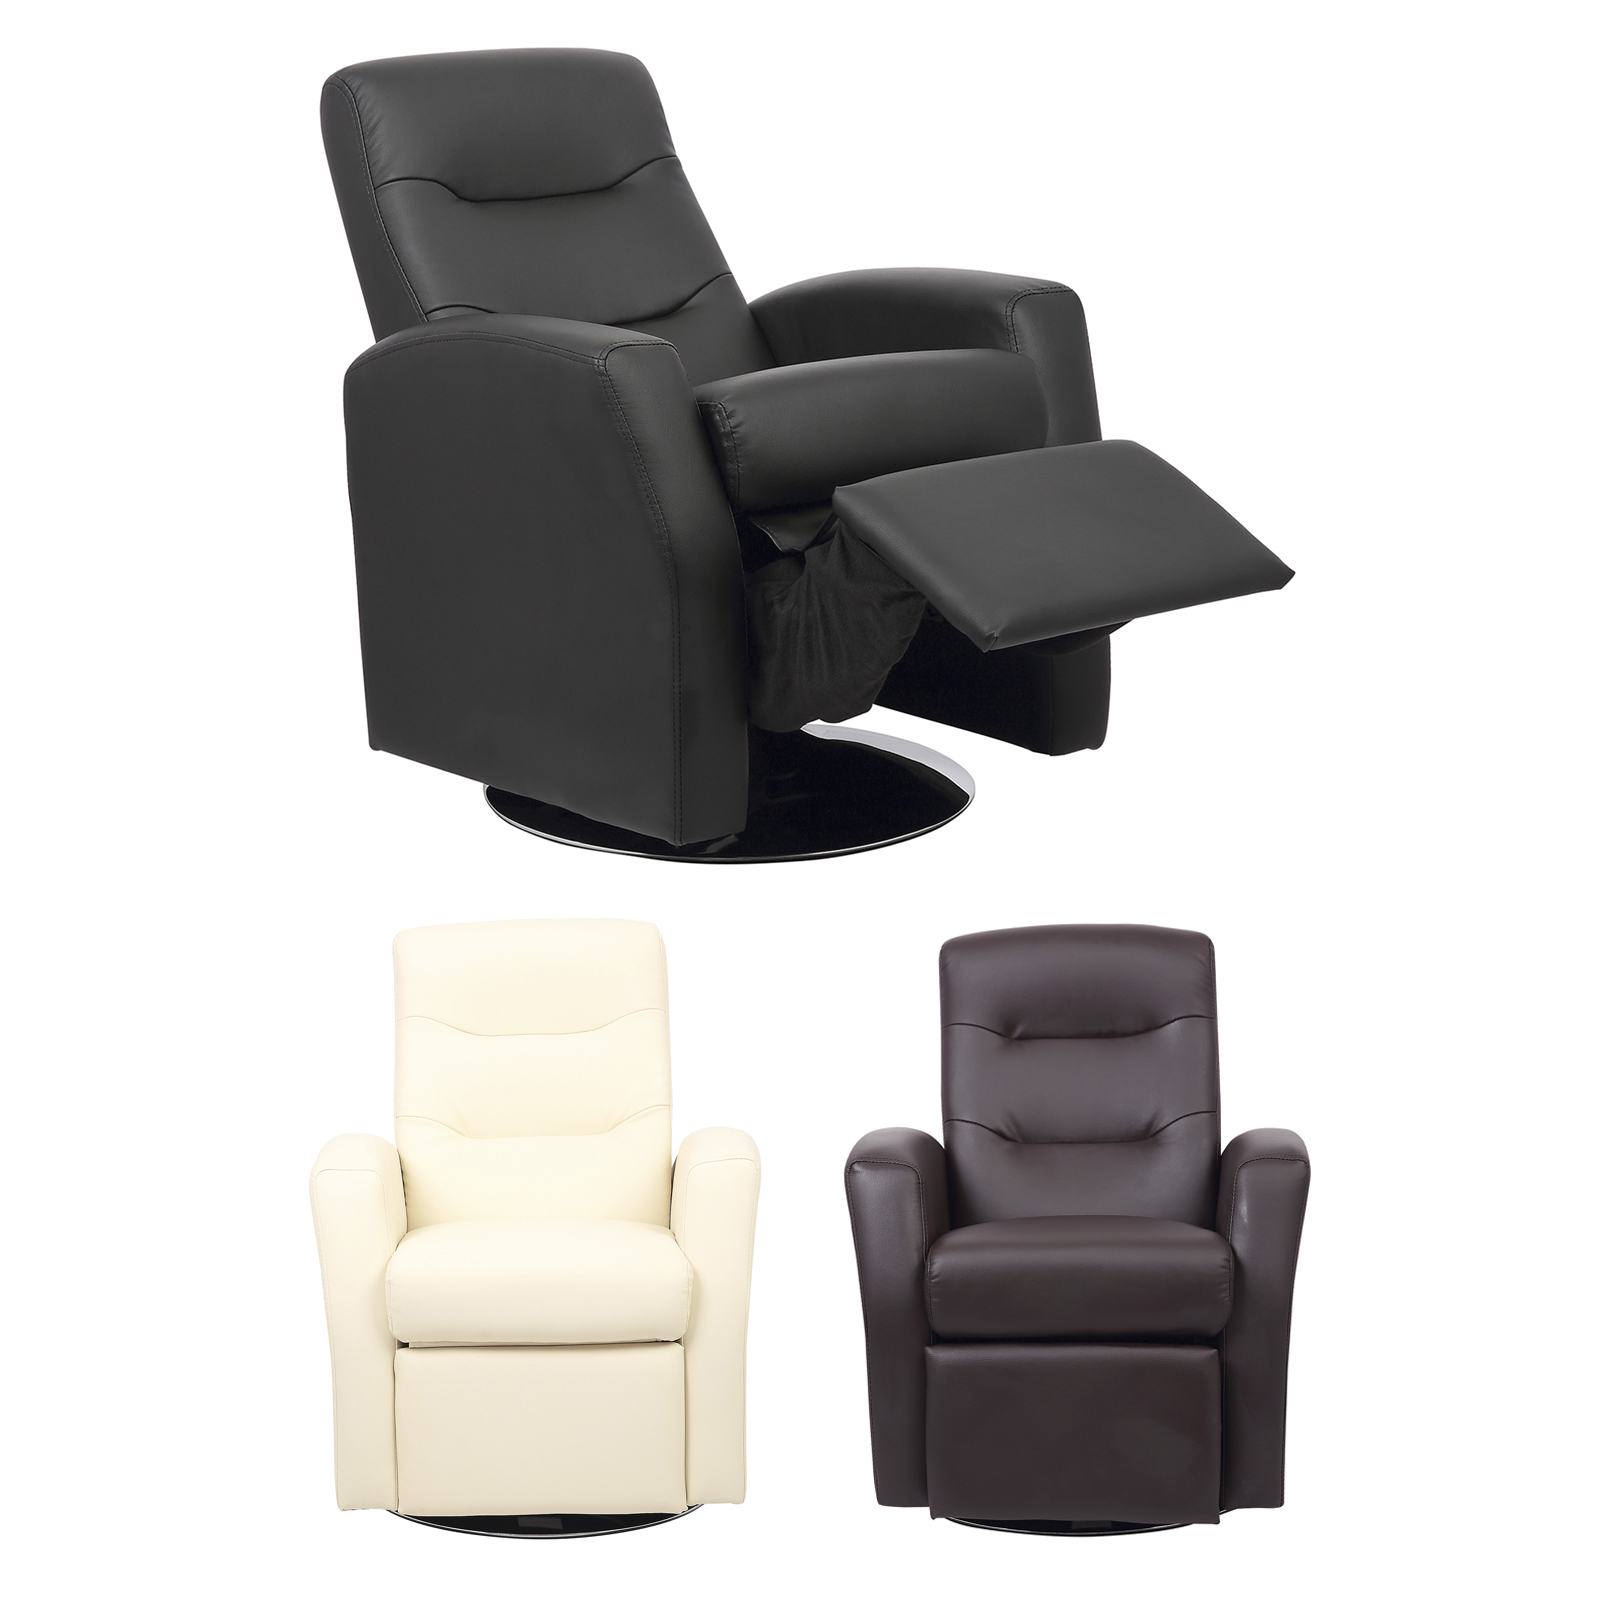 Swivel Recliner Chairs For Living Room Kids Reclining Swivel Chair Living Room Furniture Padded